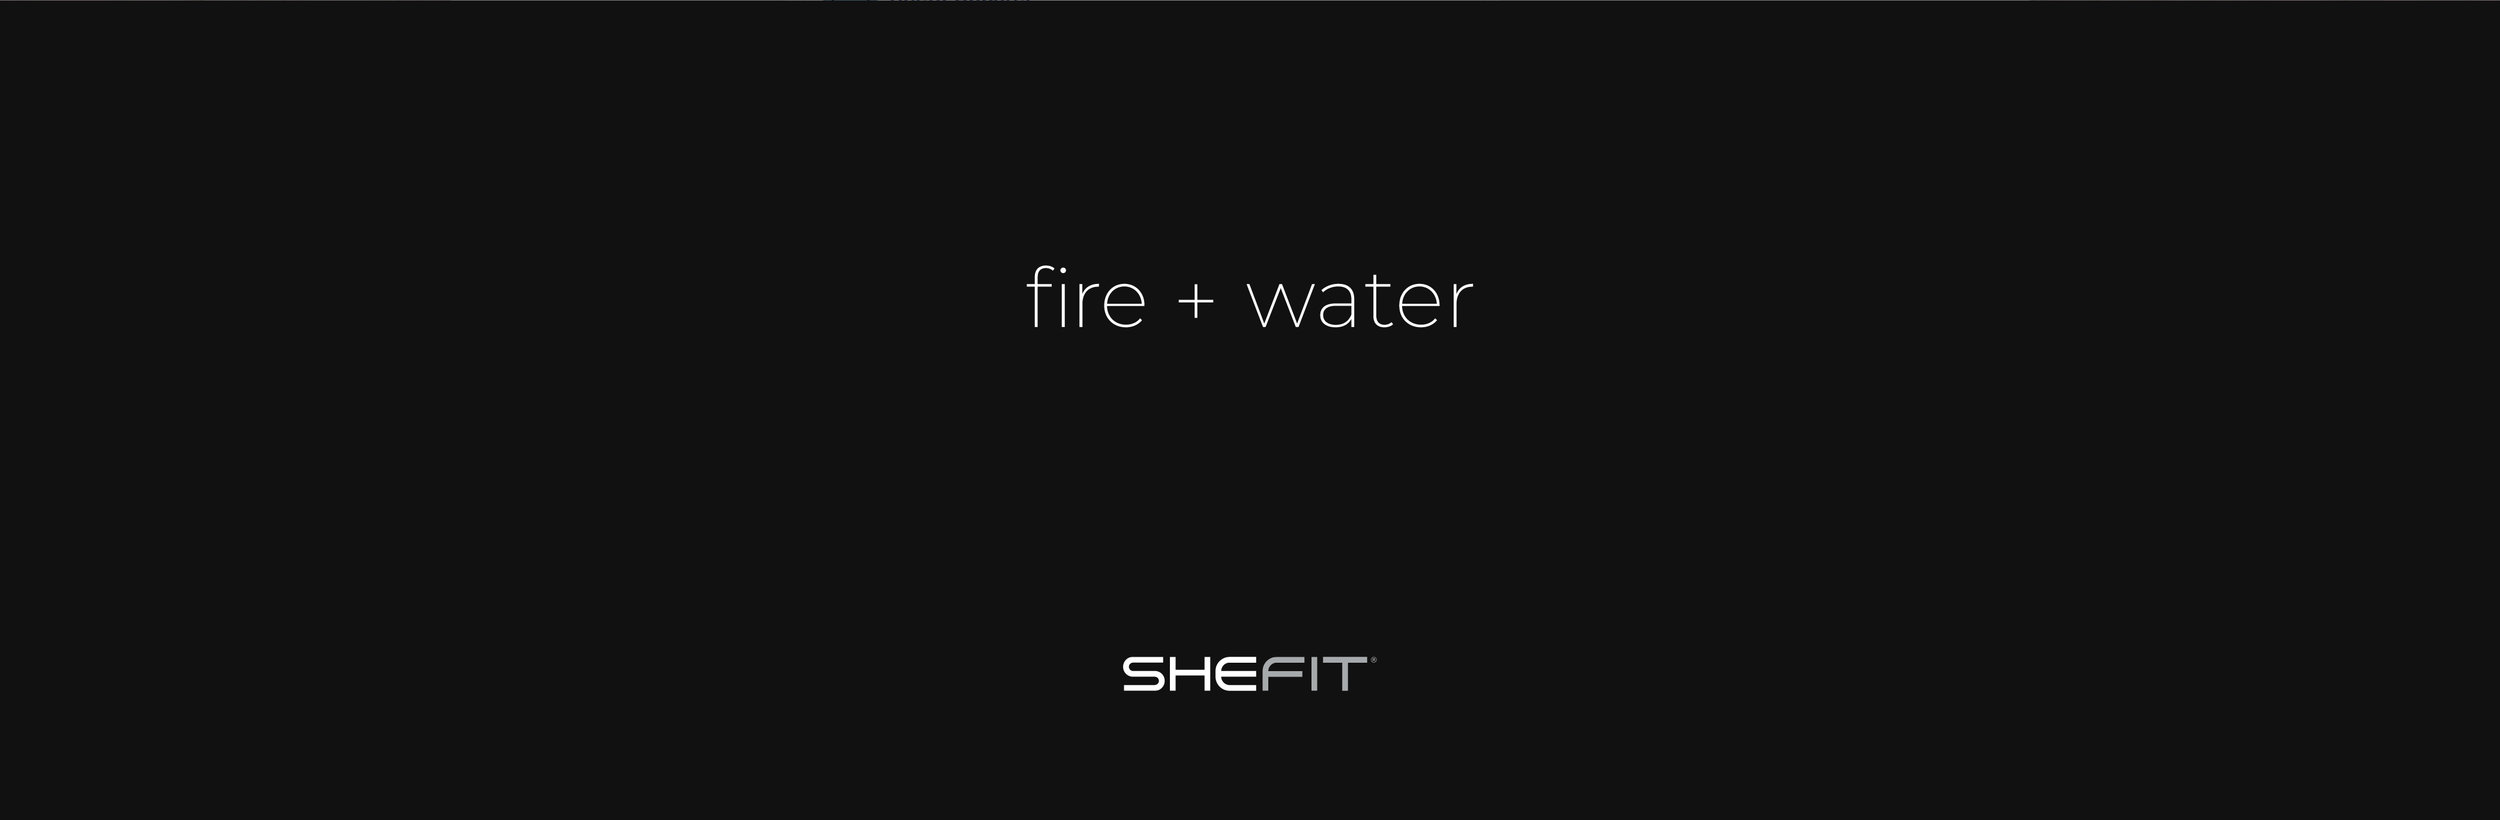 studio-incognita-shefit-fire-water-16